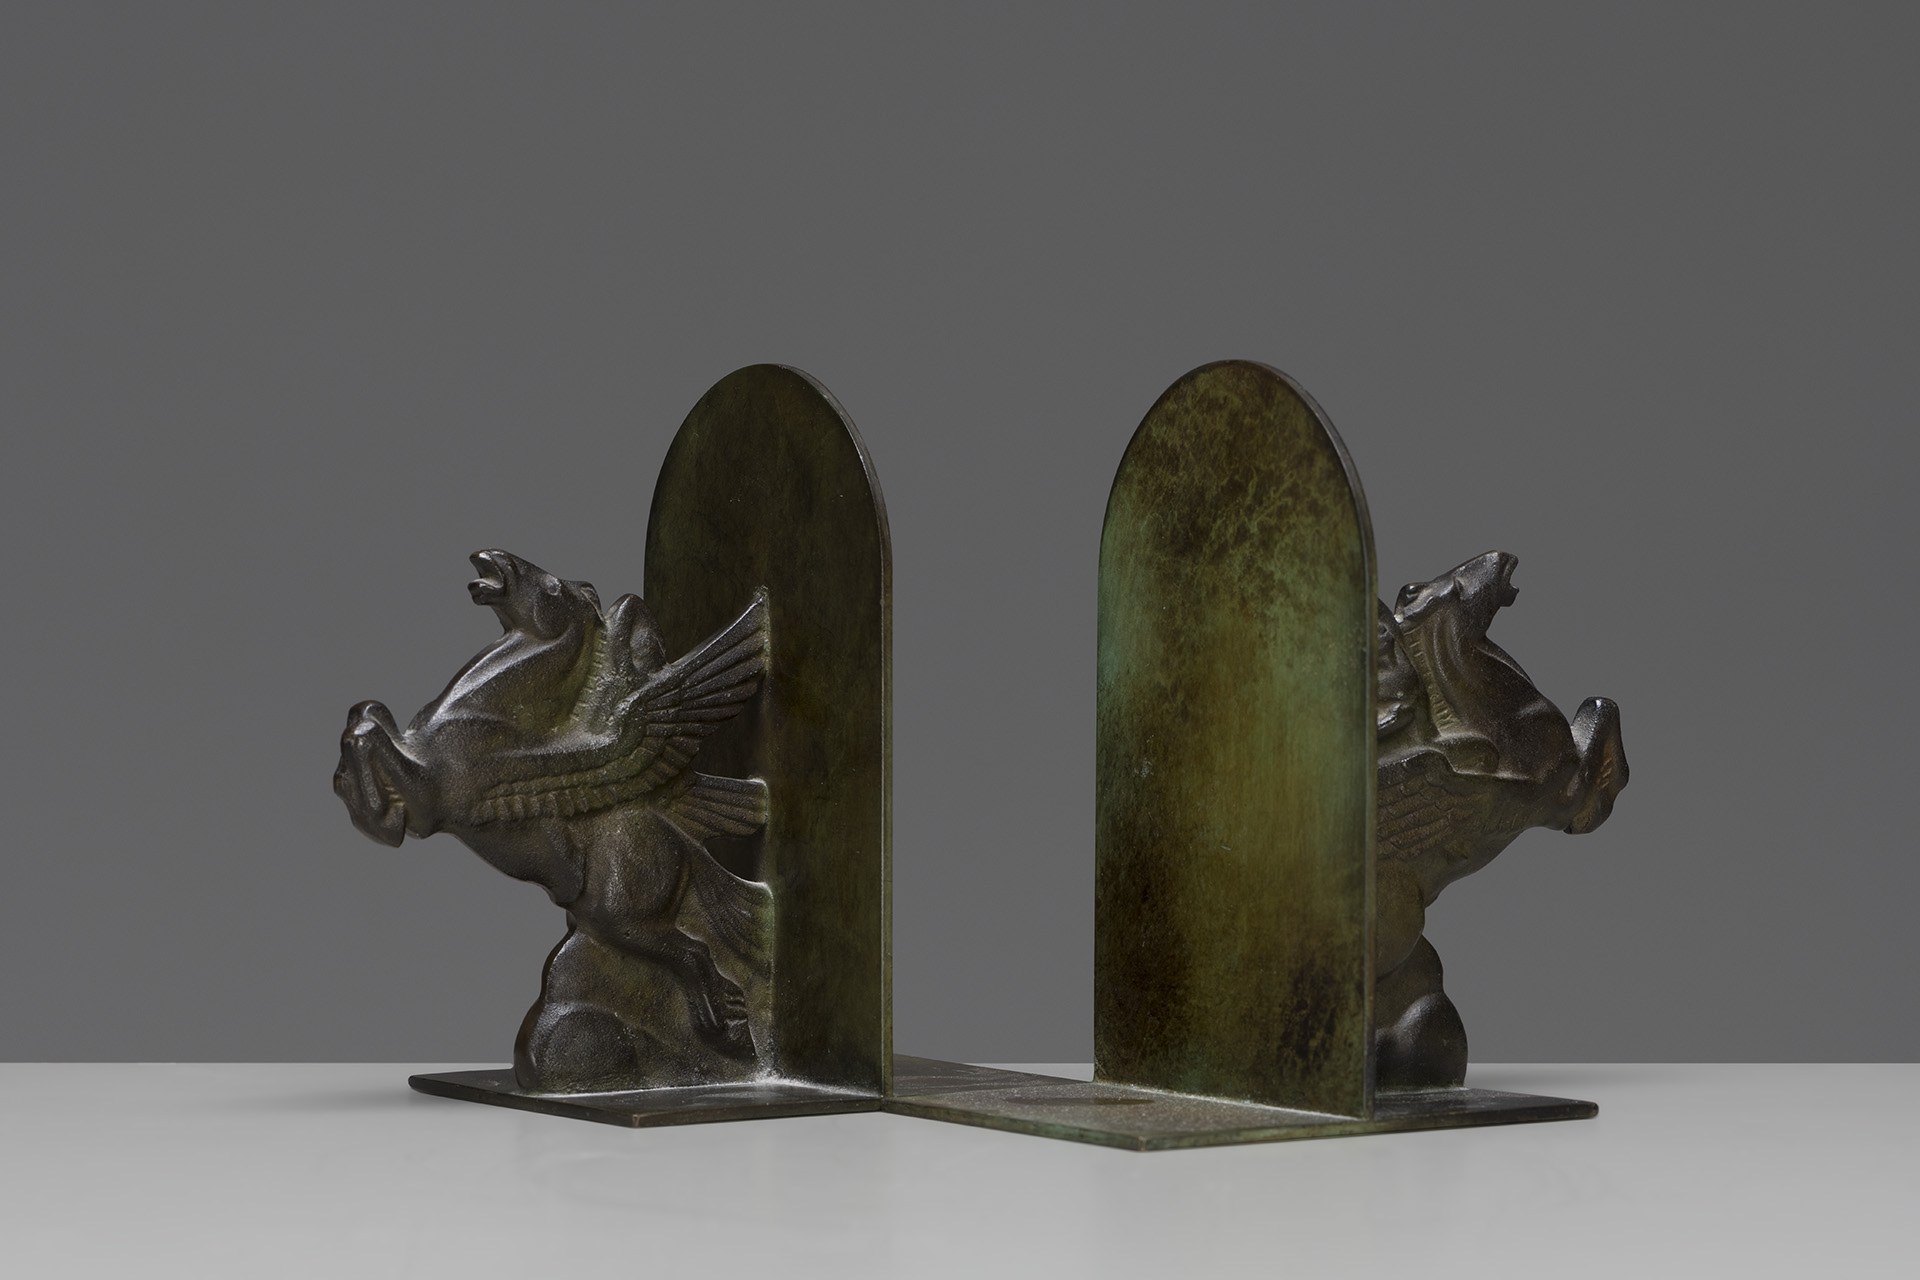 pair of bronze bookends